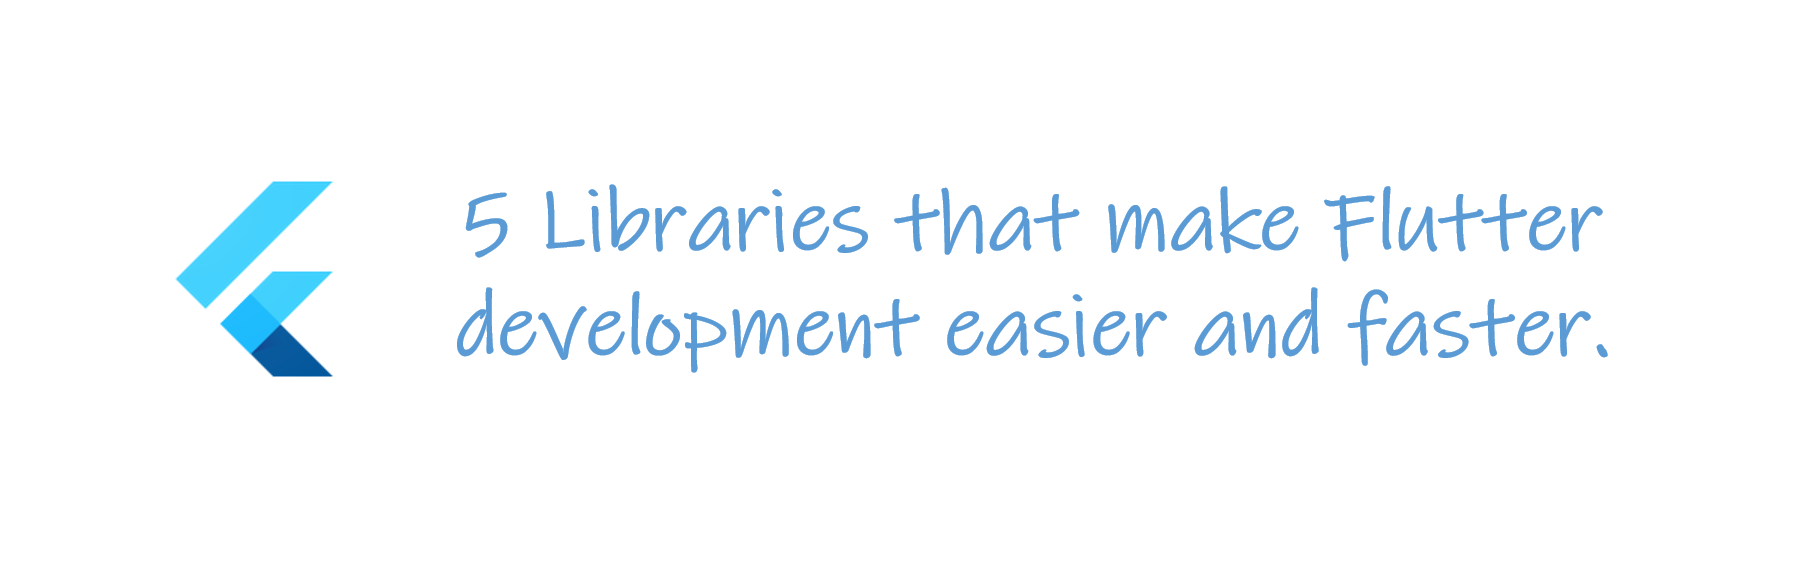 5 Libraries that make Flutter development easier and faster